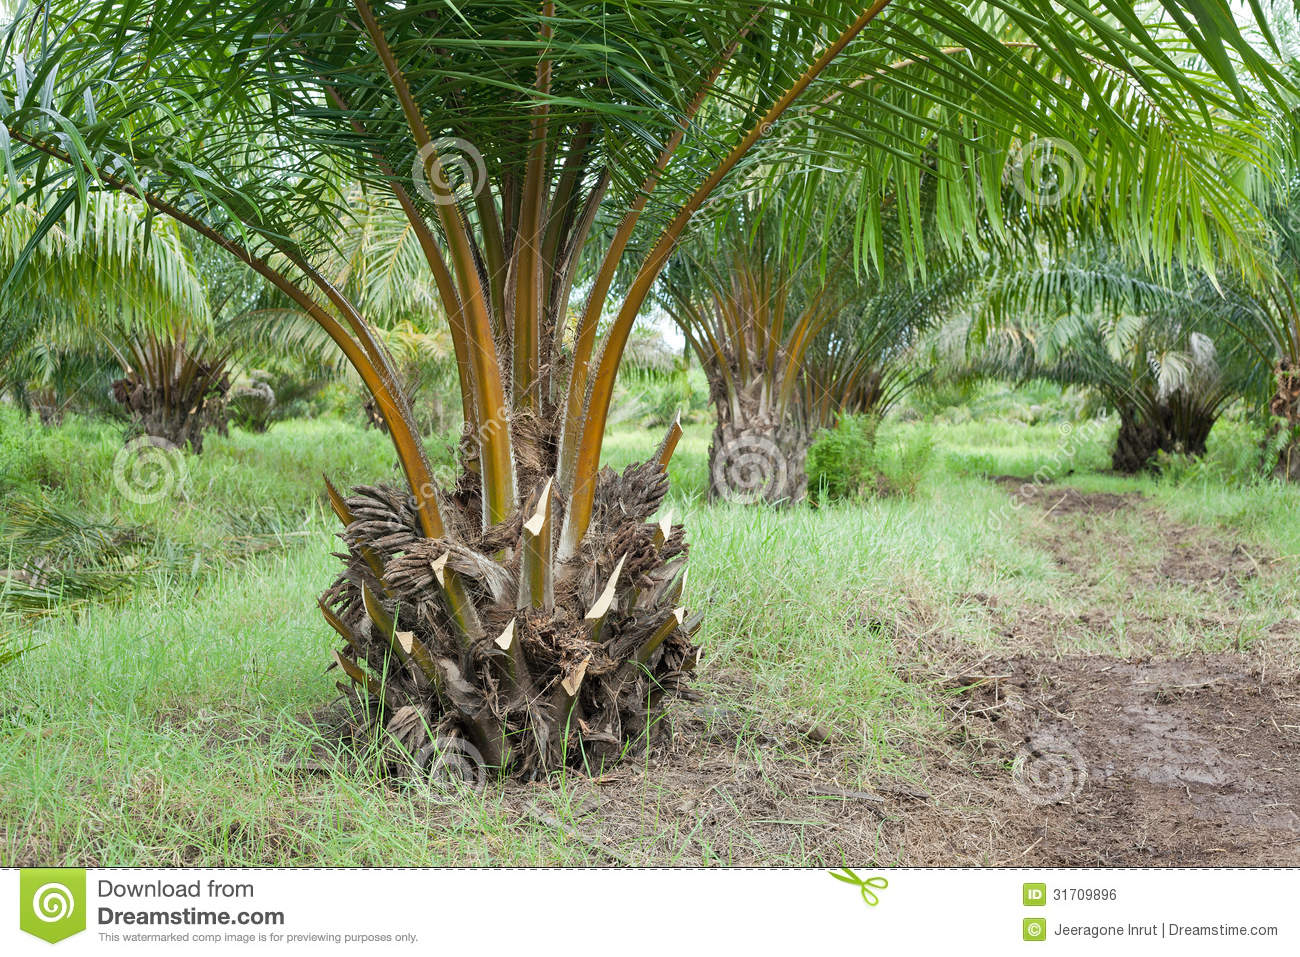 Oil Palm Plantation Royalty Free Stock Image - Image: 31709896